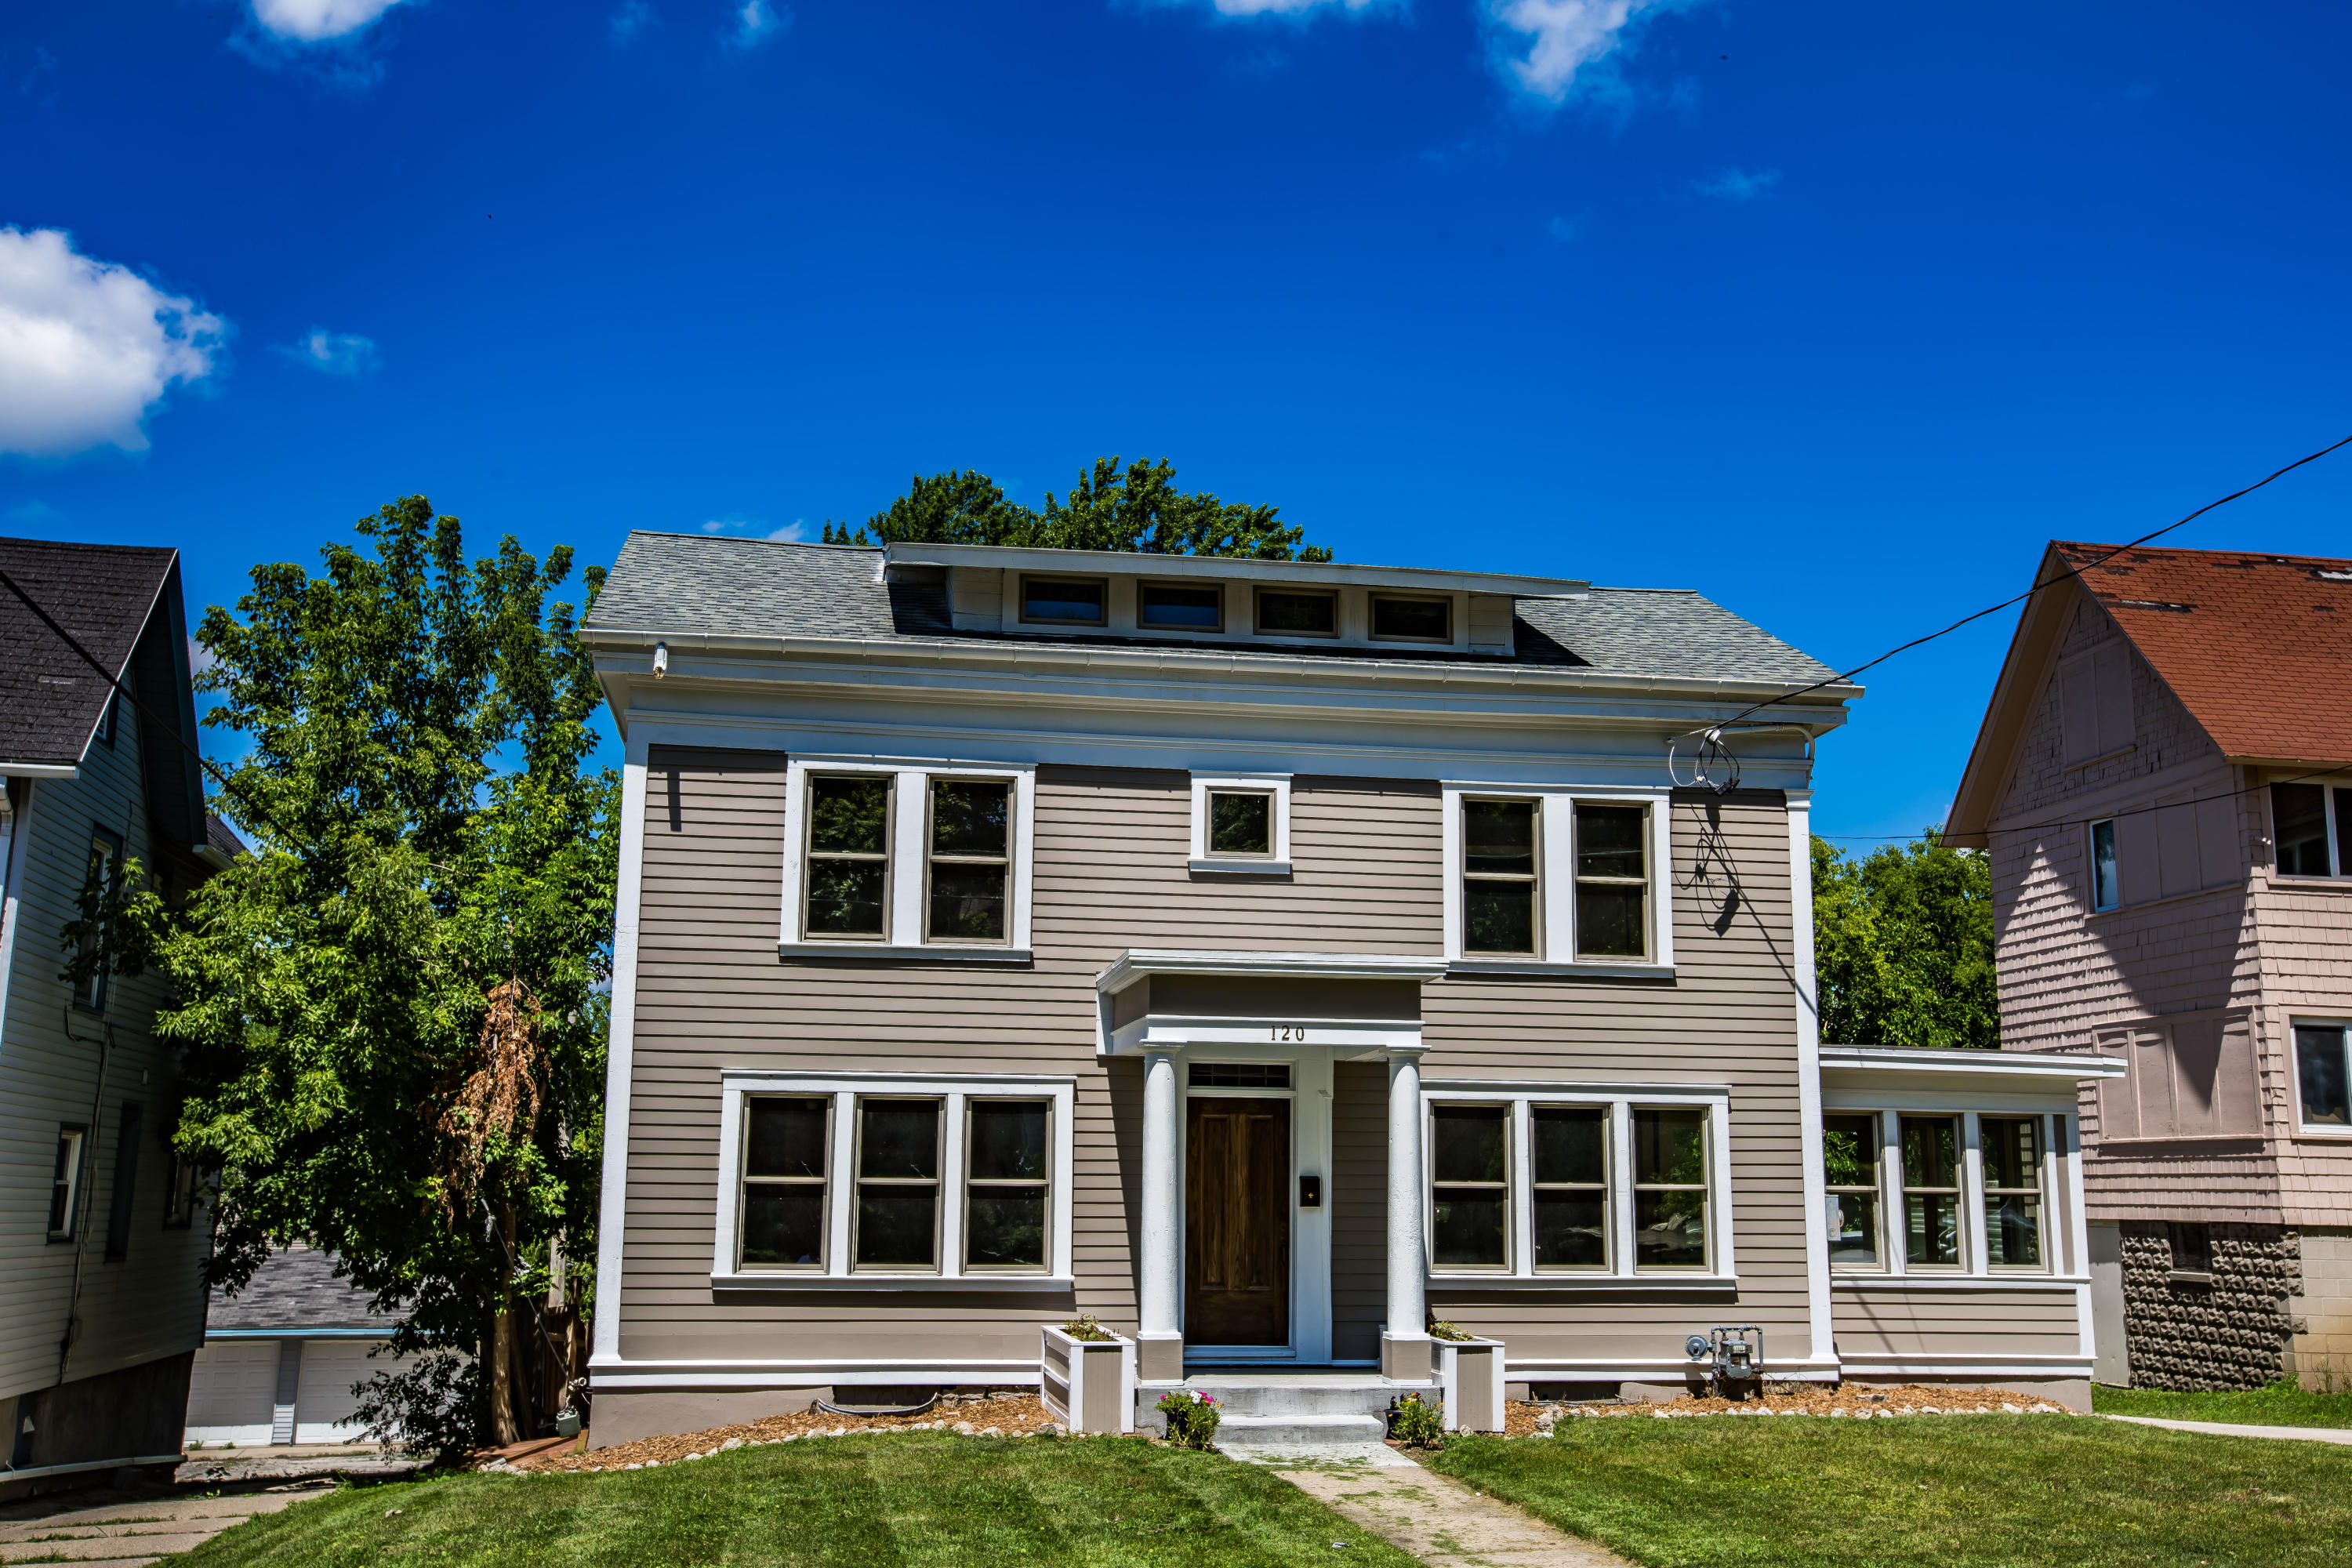 120 McCall St, Waukesha, Wisconsin 53186, 5 Bedrooms Bedrooms, 11 Rooms Rooms,2 BathroomsBathrooms,Single-Family,For Sale,McCall St,1645562